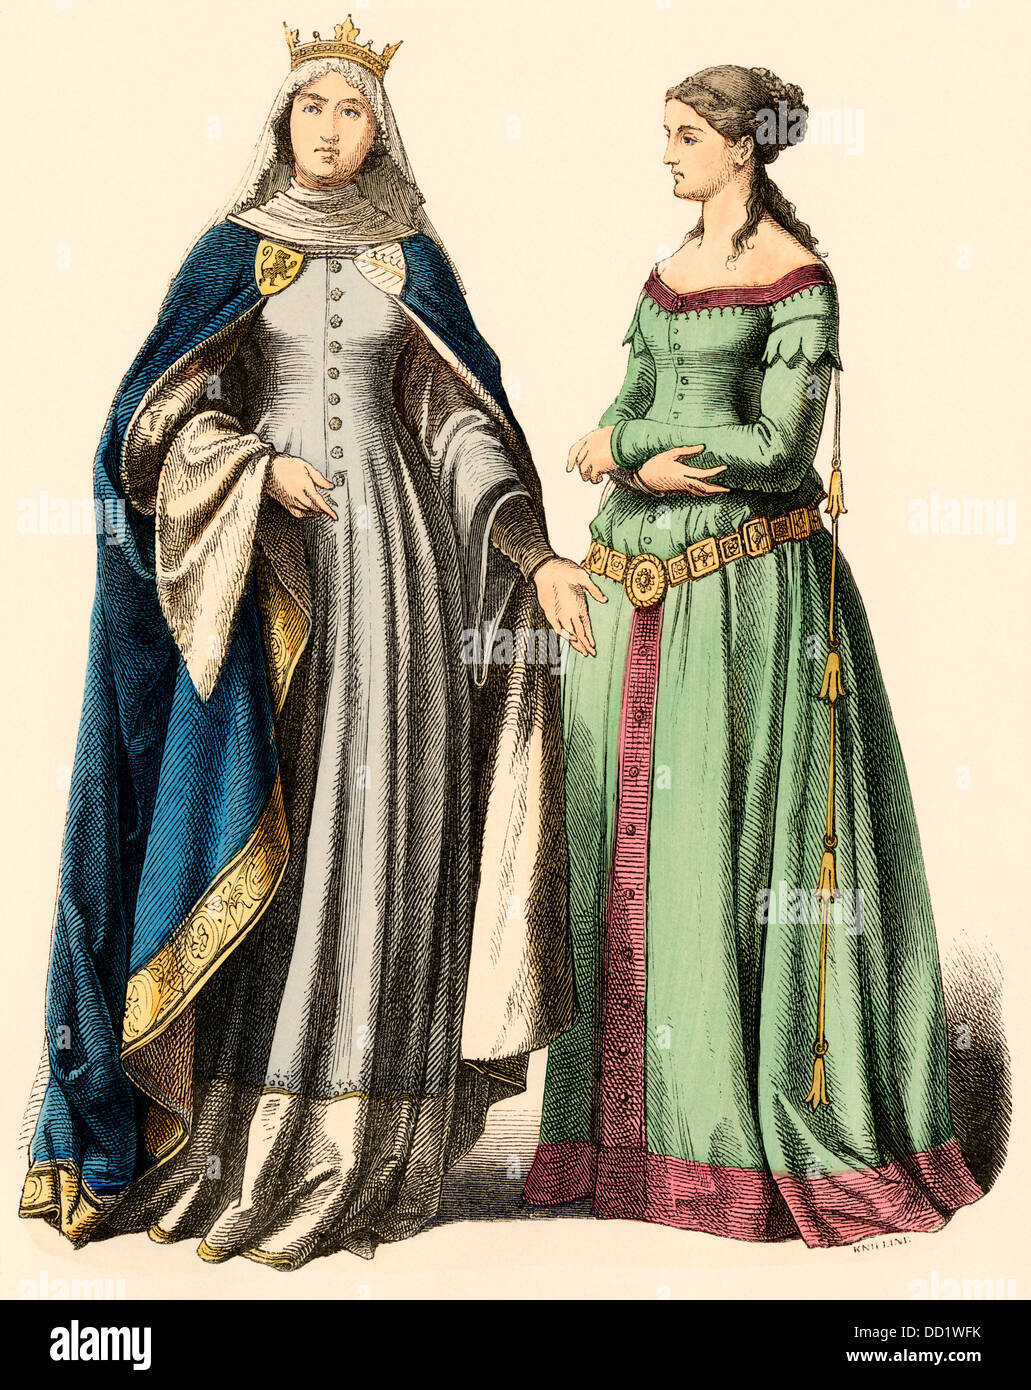 German princess and a lady, 1300s Hand-colored print - Stock Image